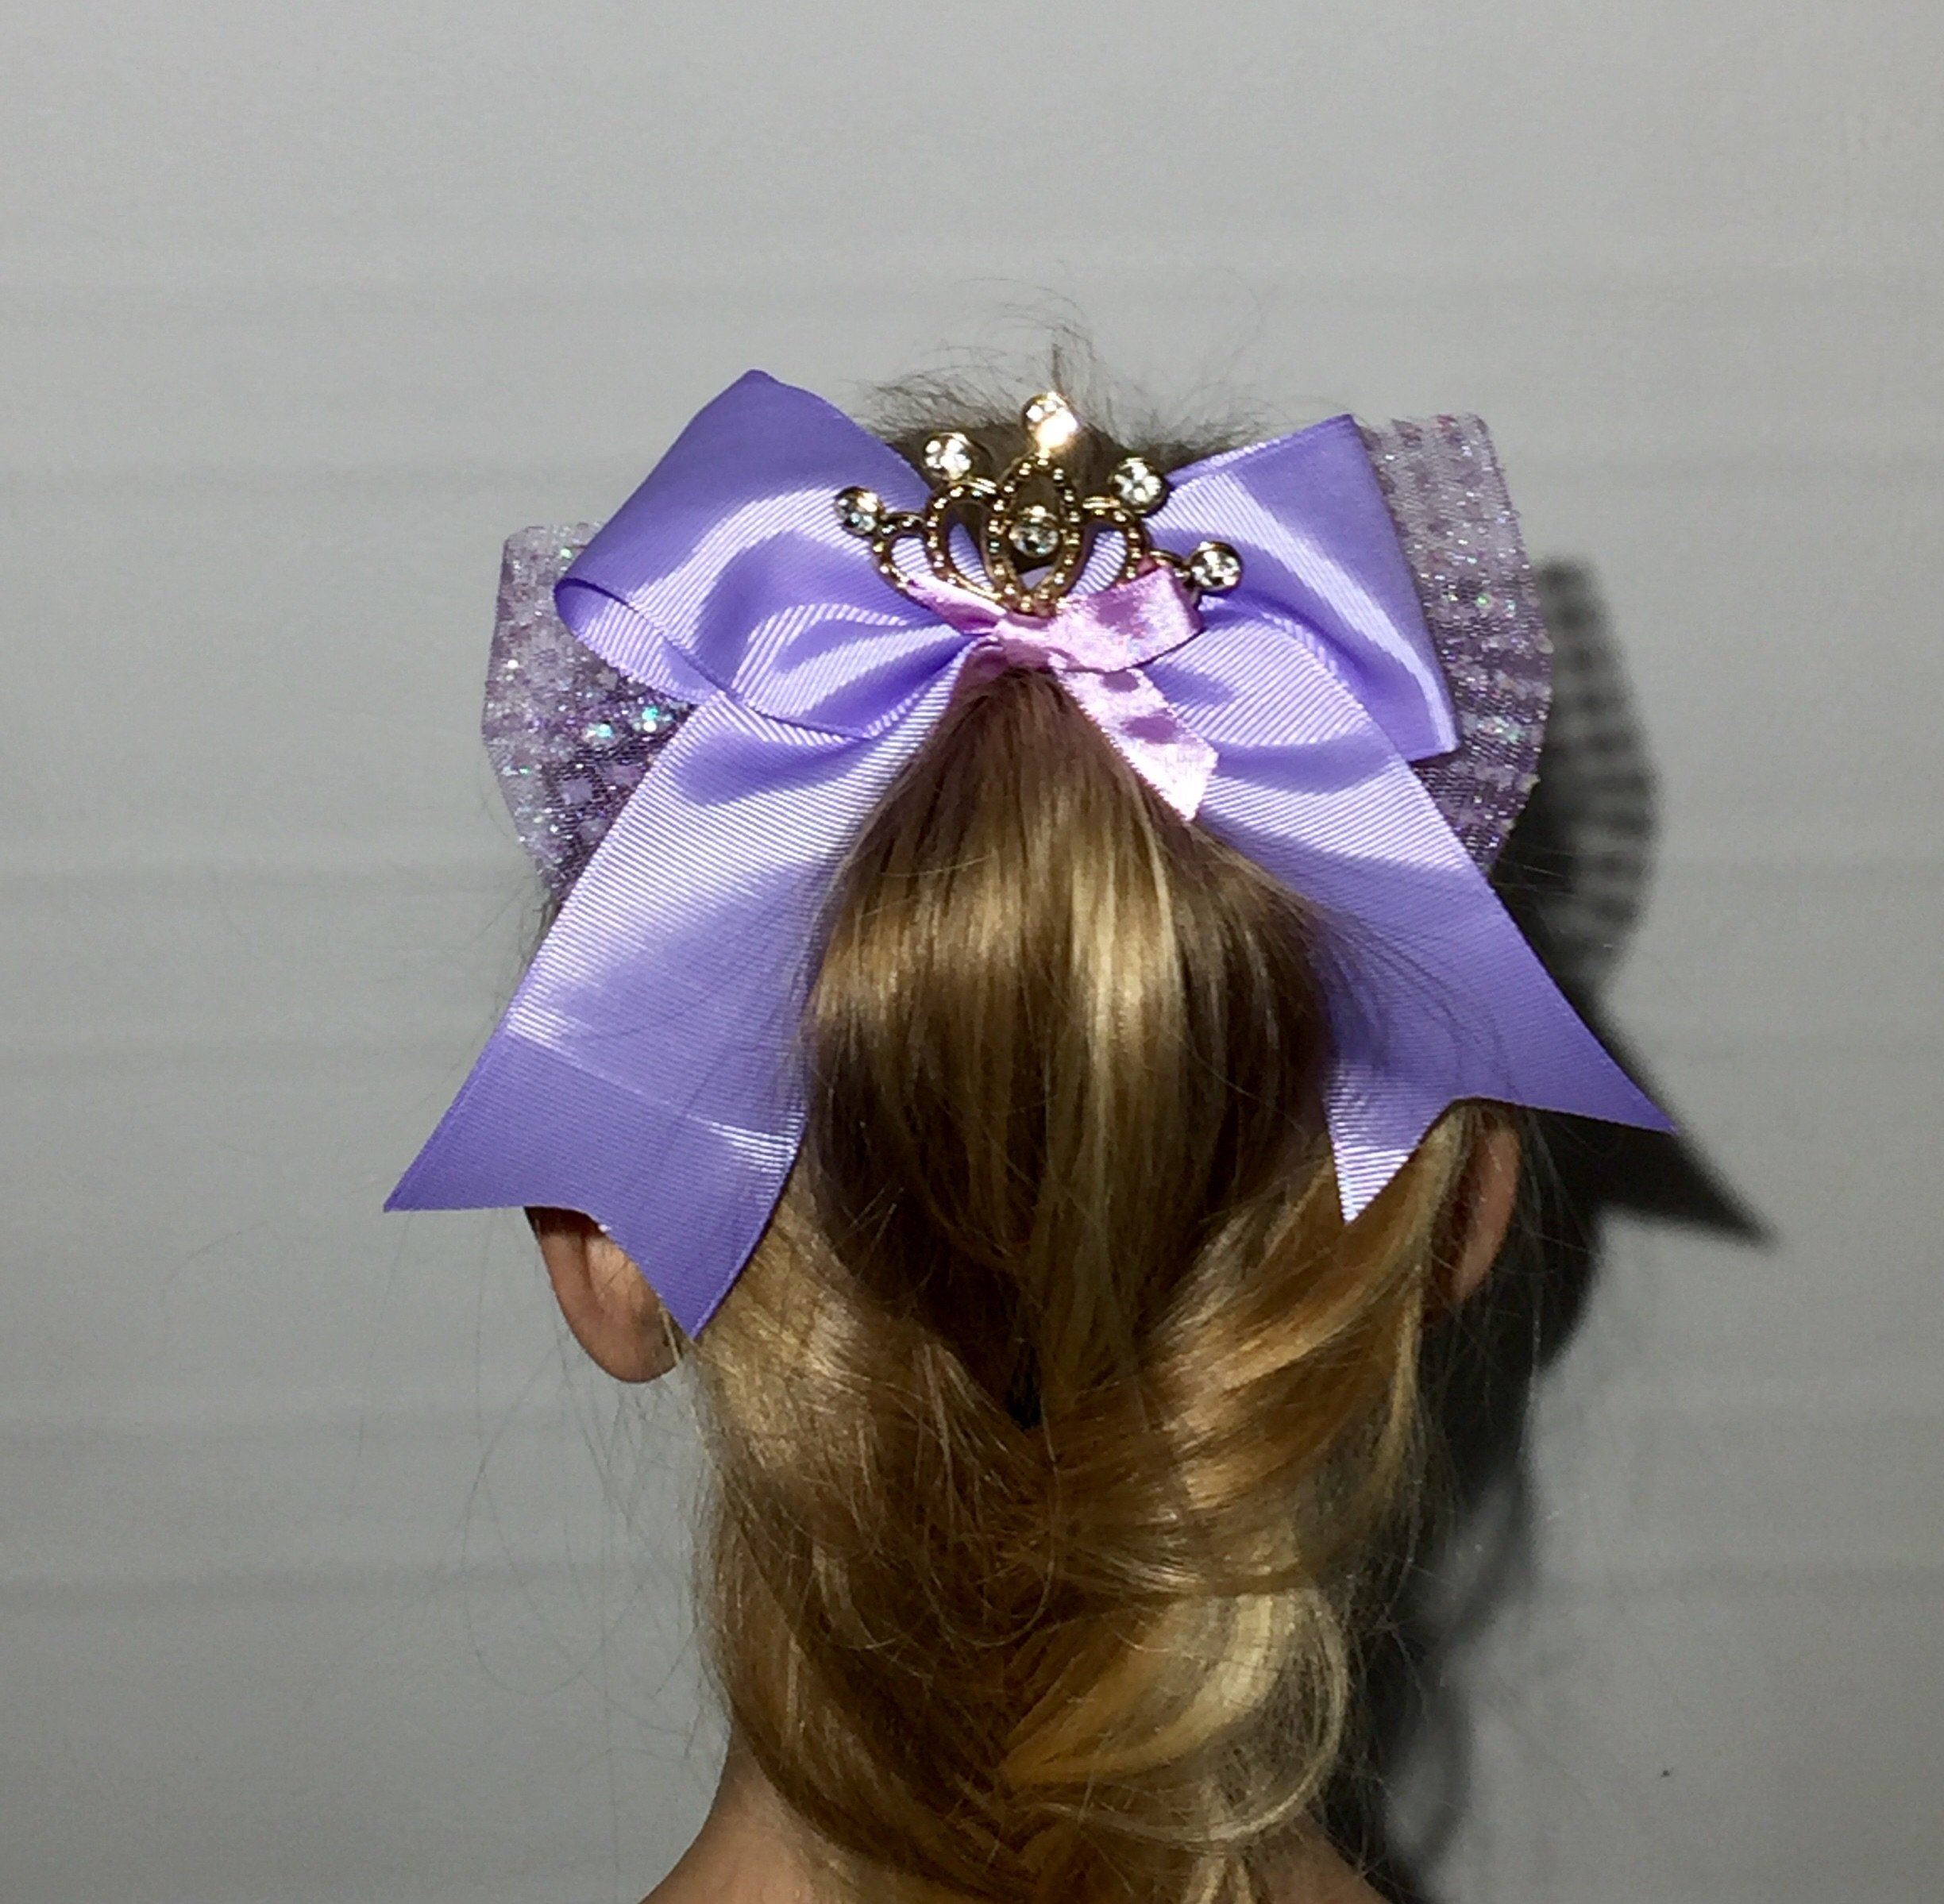 Girl's JoJo Inspired Cheer Big Hair Bow: Princess Tiara